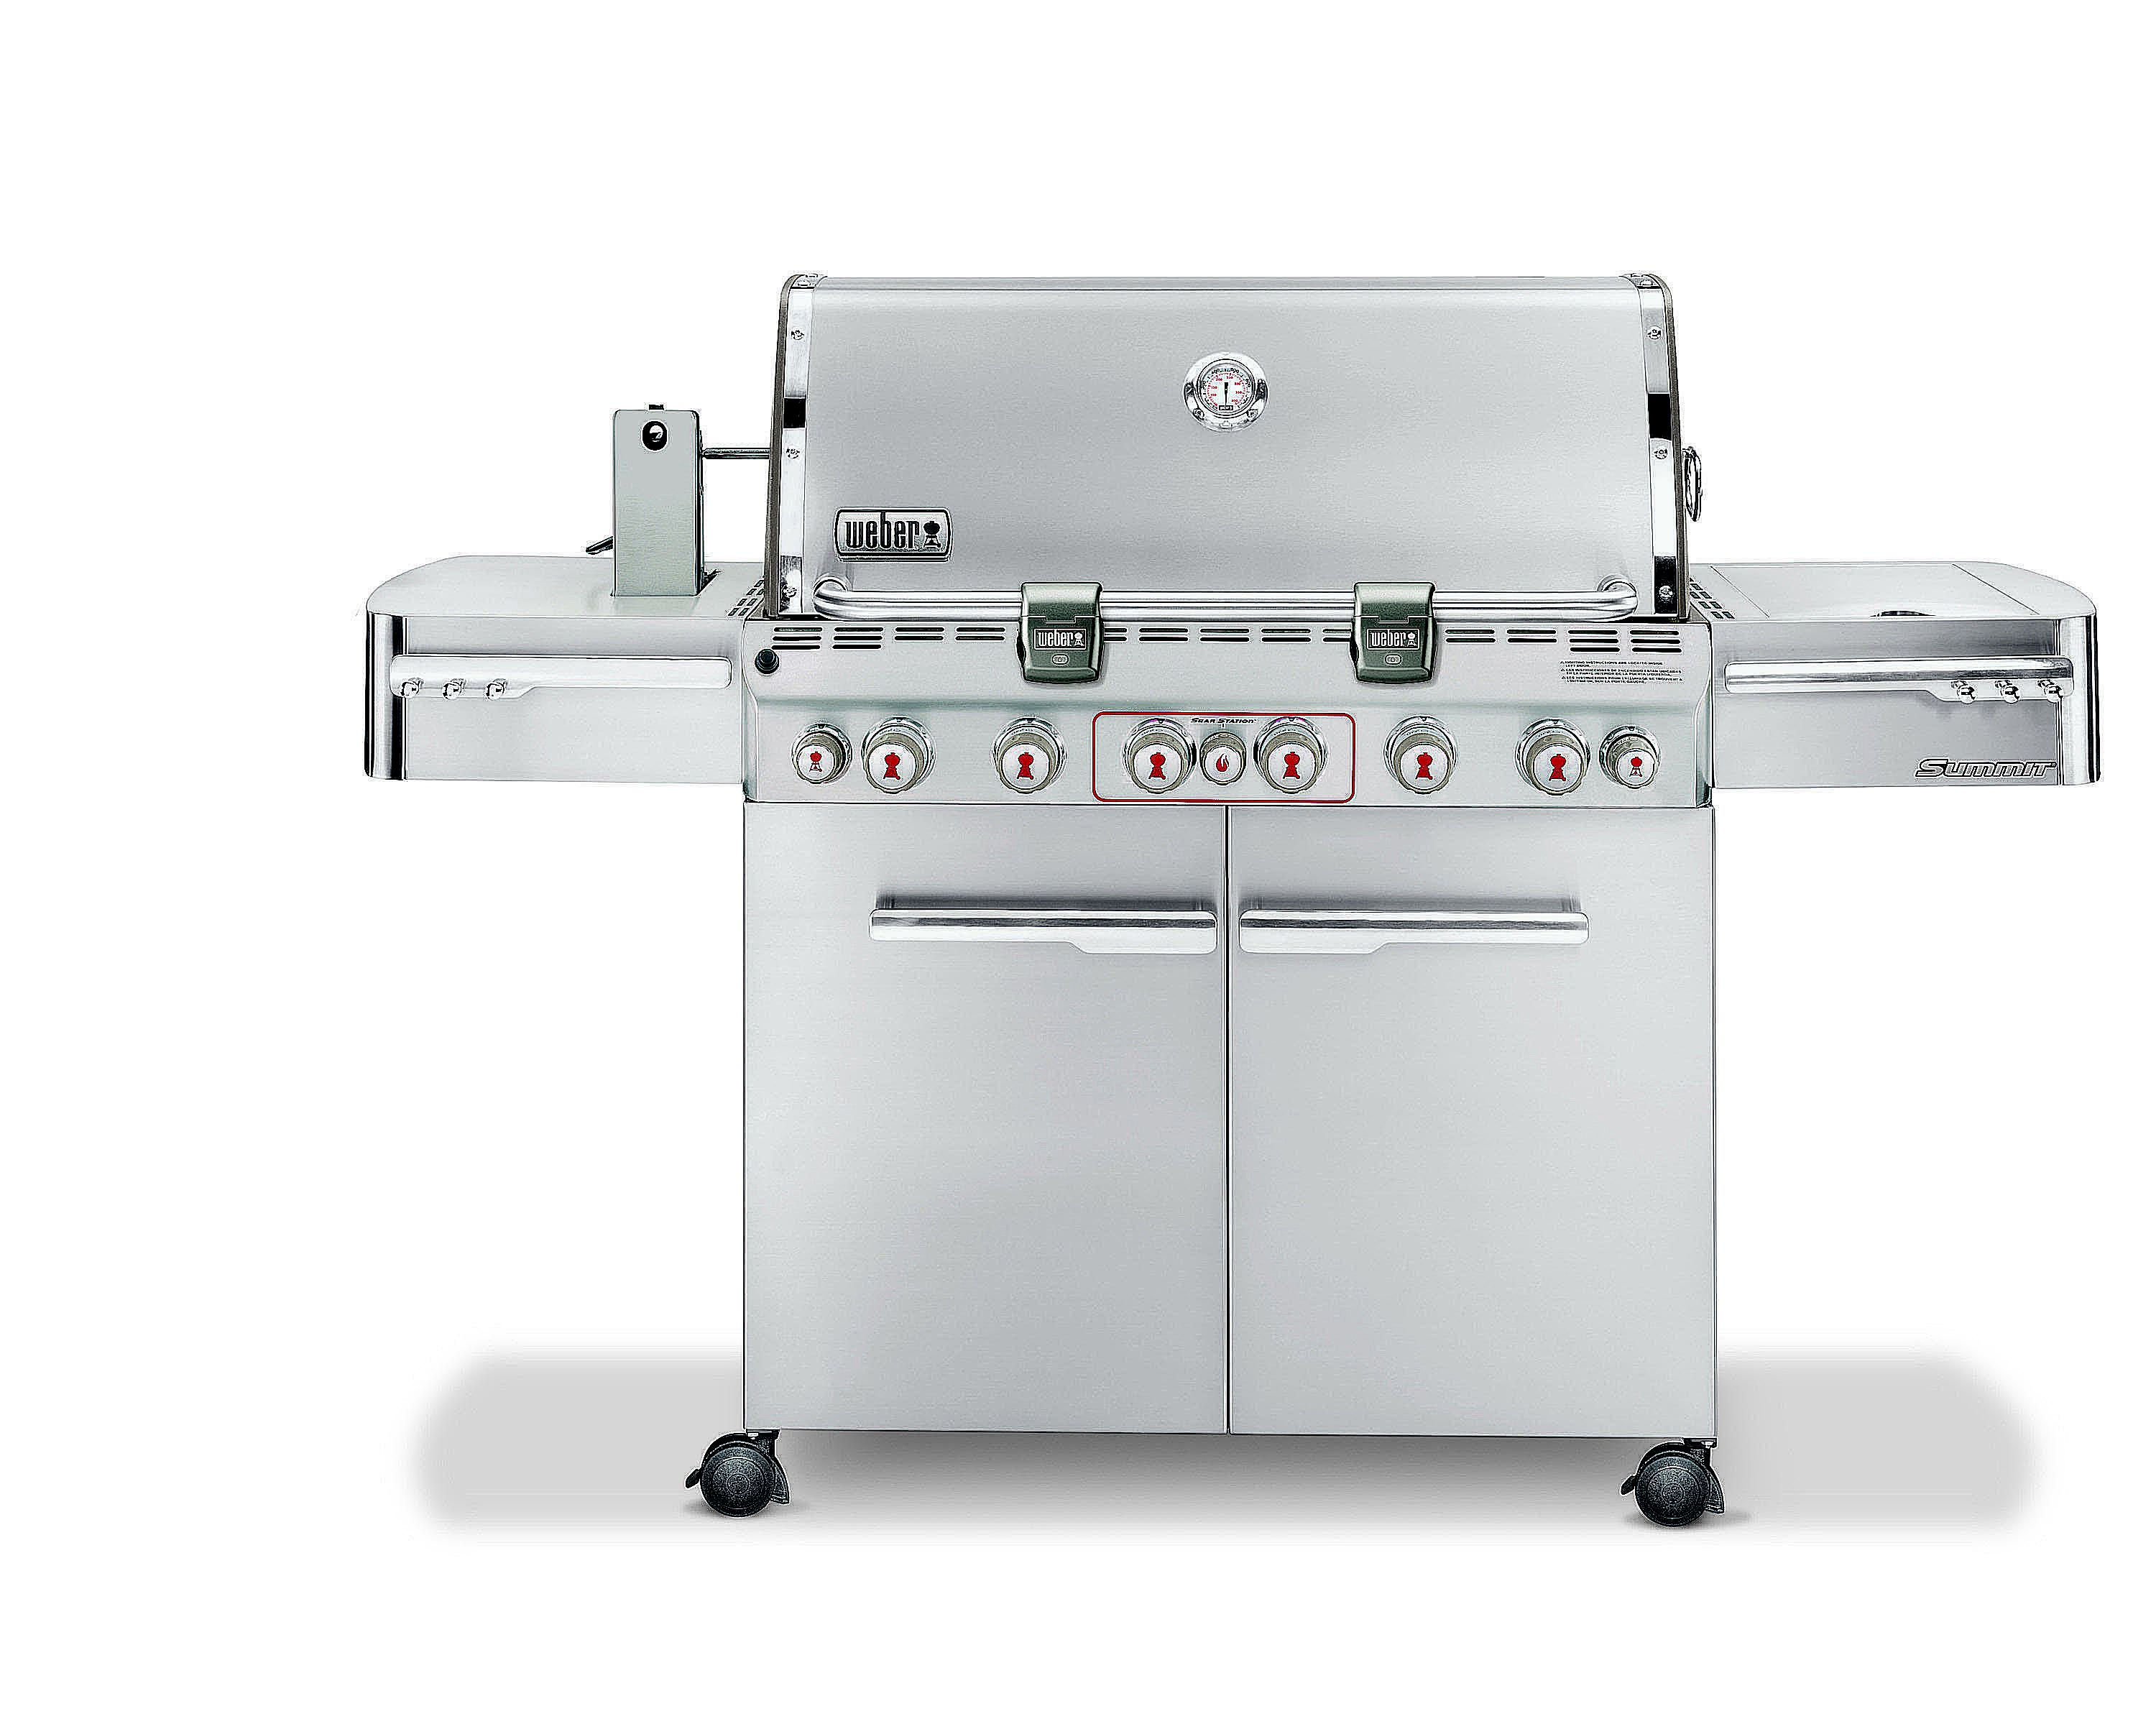 weber summit s 670 gas grill review. Black Bedroom Furniture Sets. Home Design Ideas